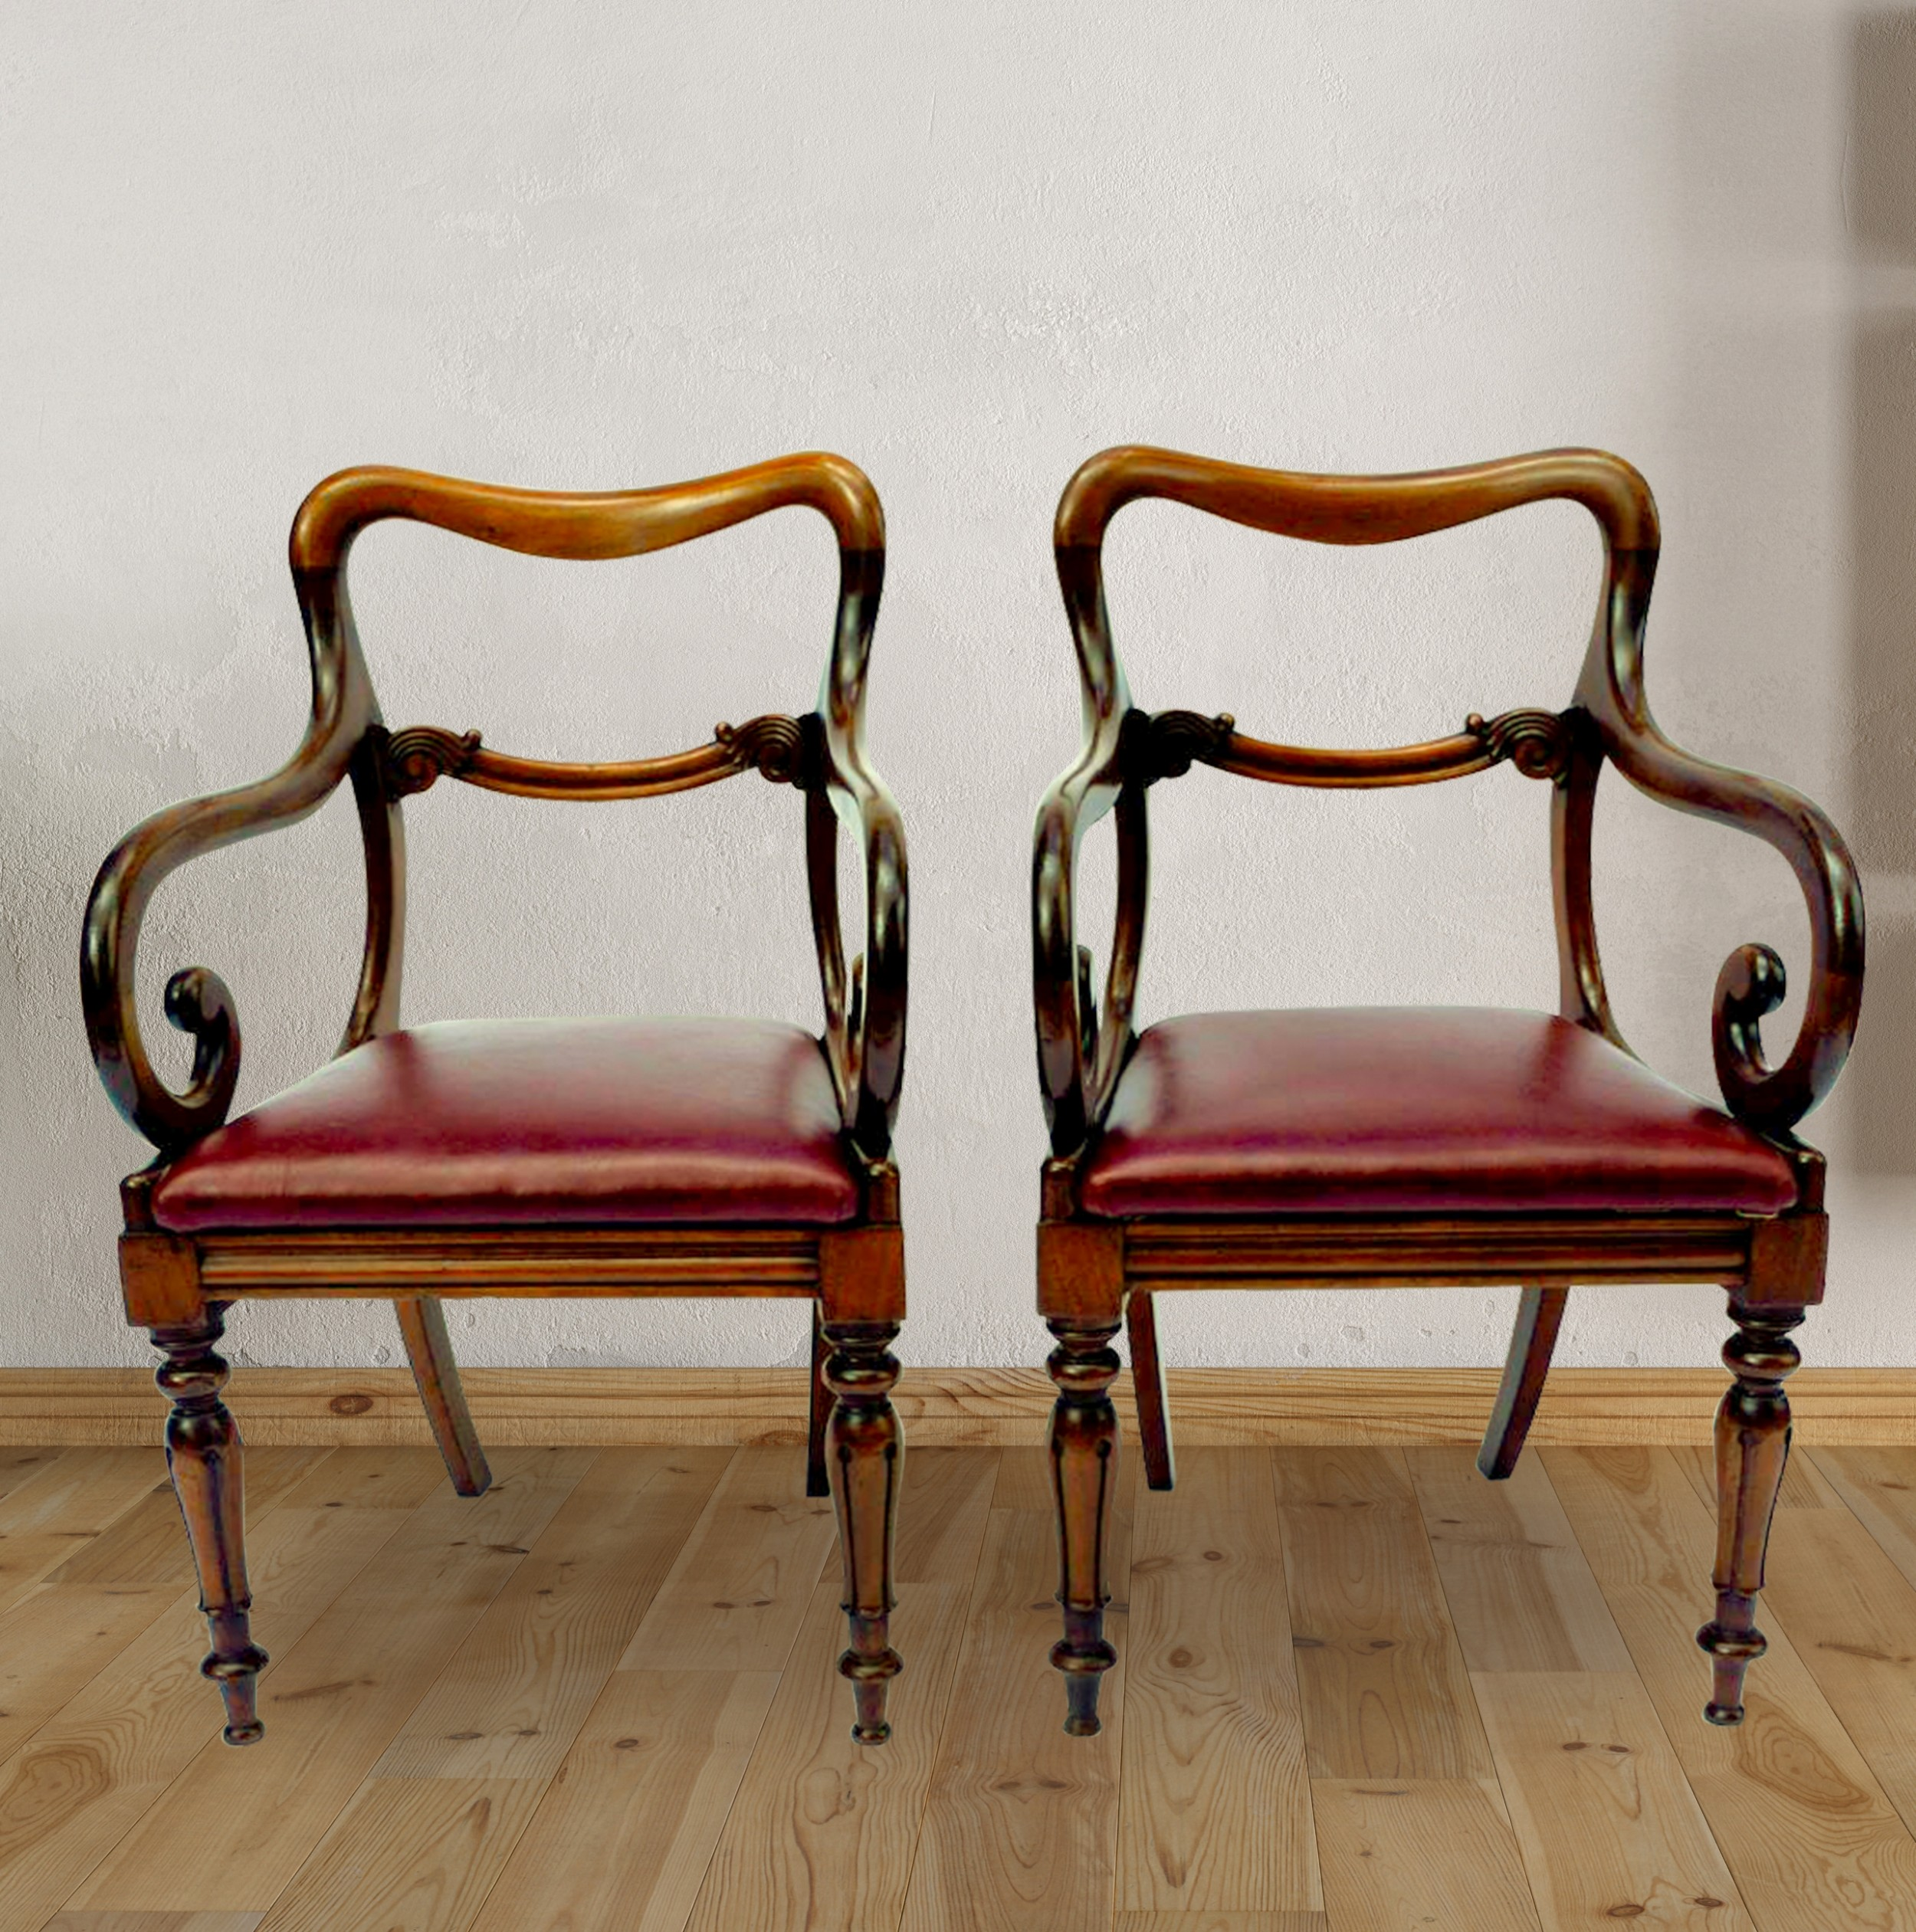 antique mahogany open armchairs or desk chairs circa 1840